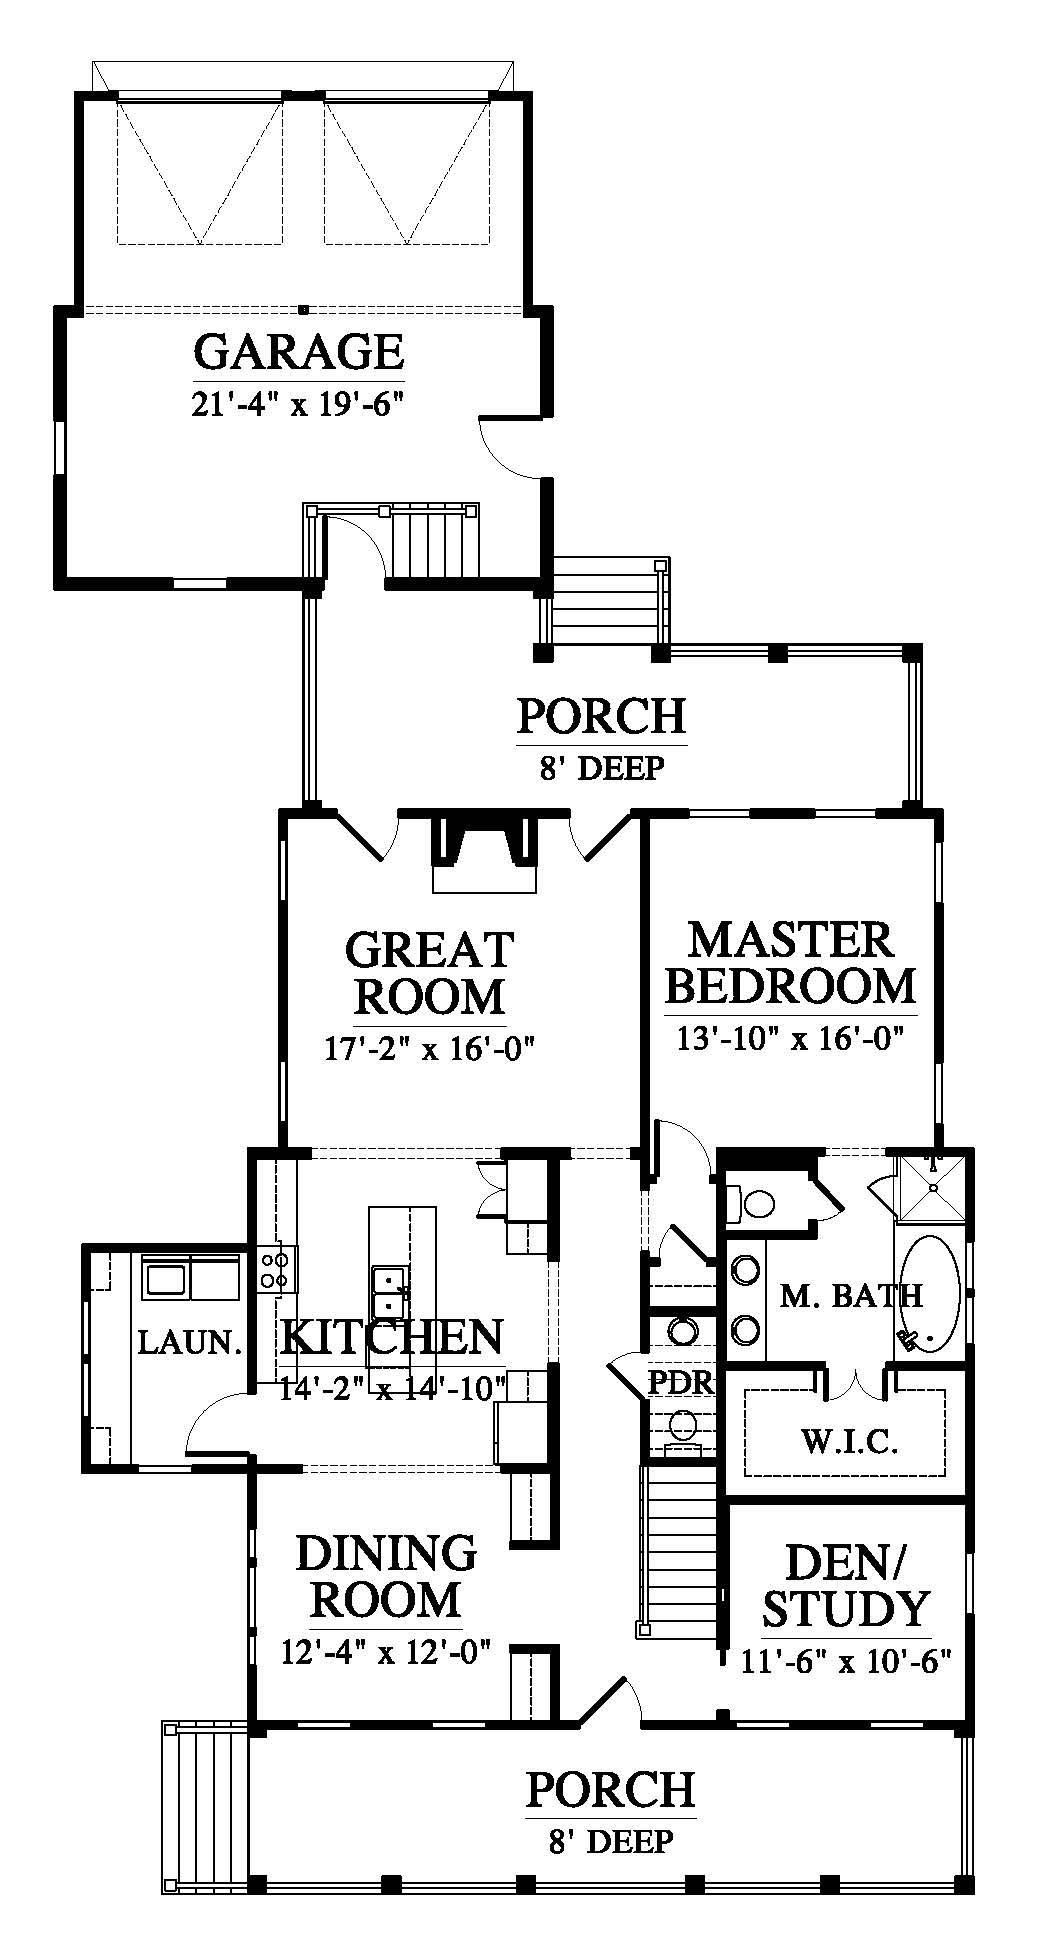 Arrington 14388 House Plan 14388 Design From Allison Ramsey Architects How To Plan House Plans Architect